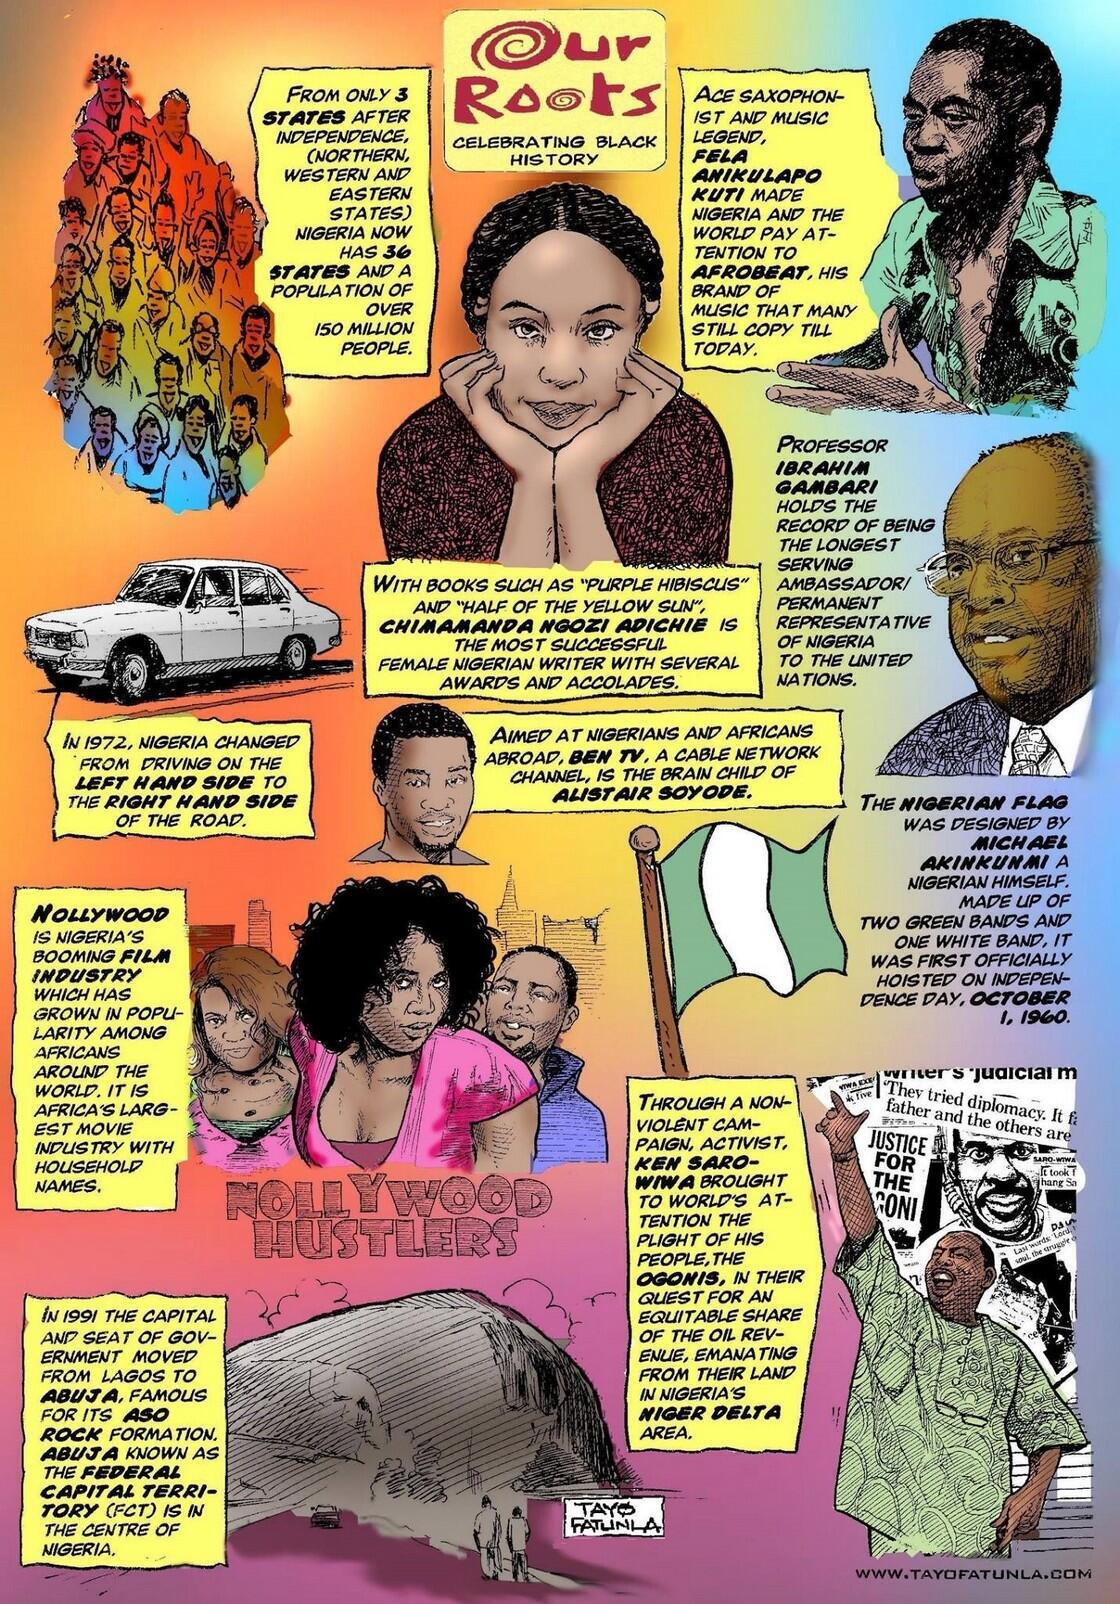 Comic panel by Nigerian artist Tayo Fatunla whose book, Our Roots, earned him the Pioneer Lifetime Achievement (PLA) U.S Award, for his contribution to black history.